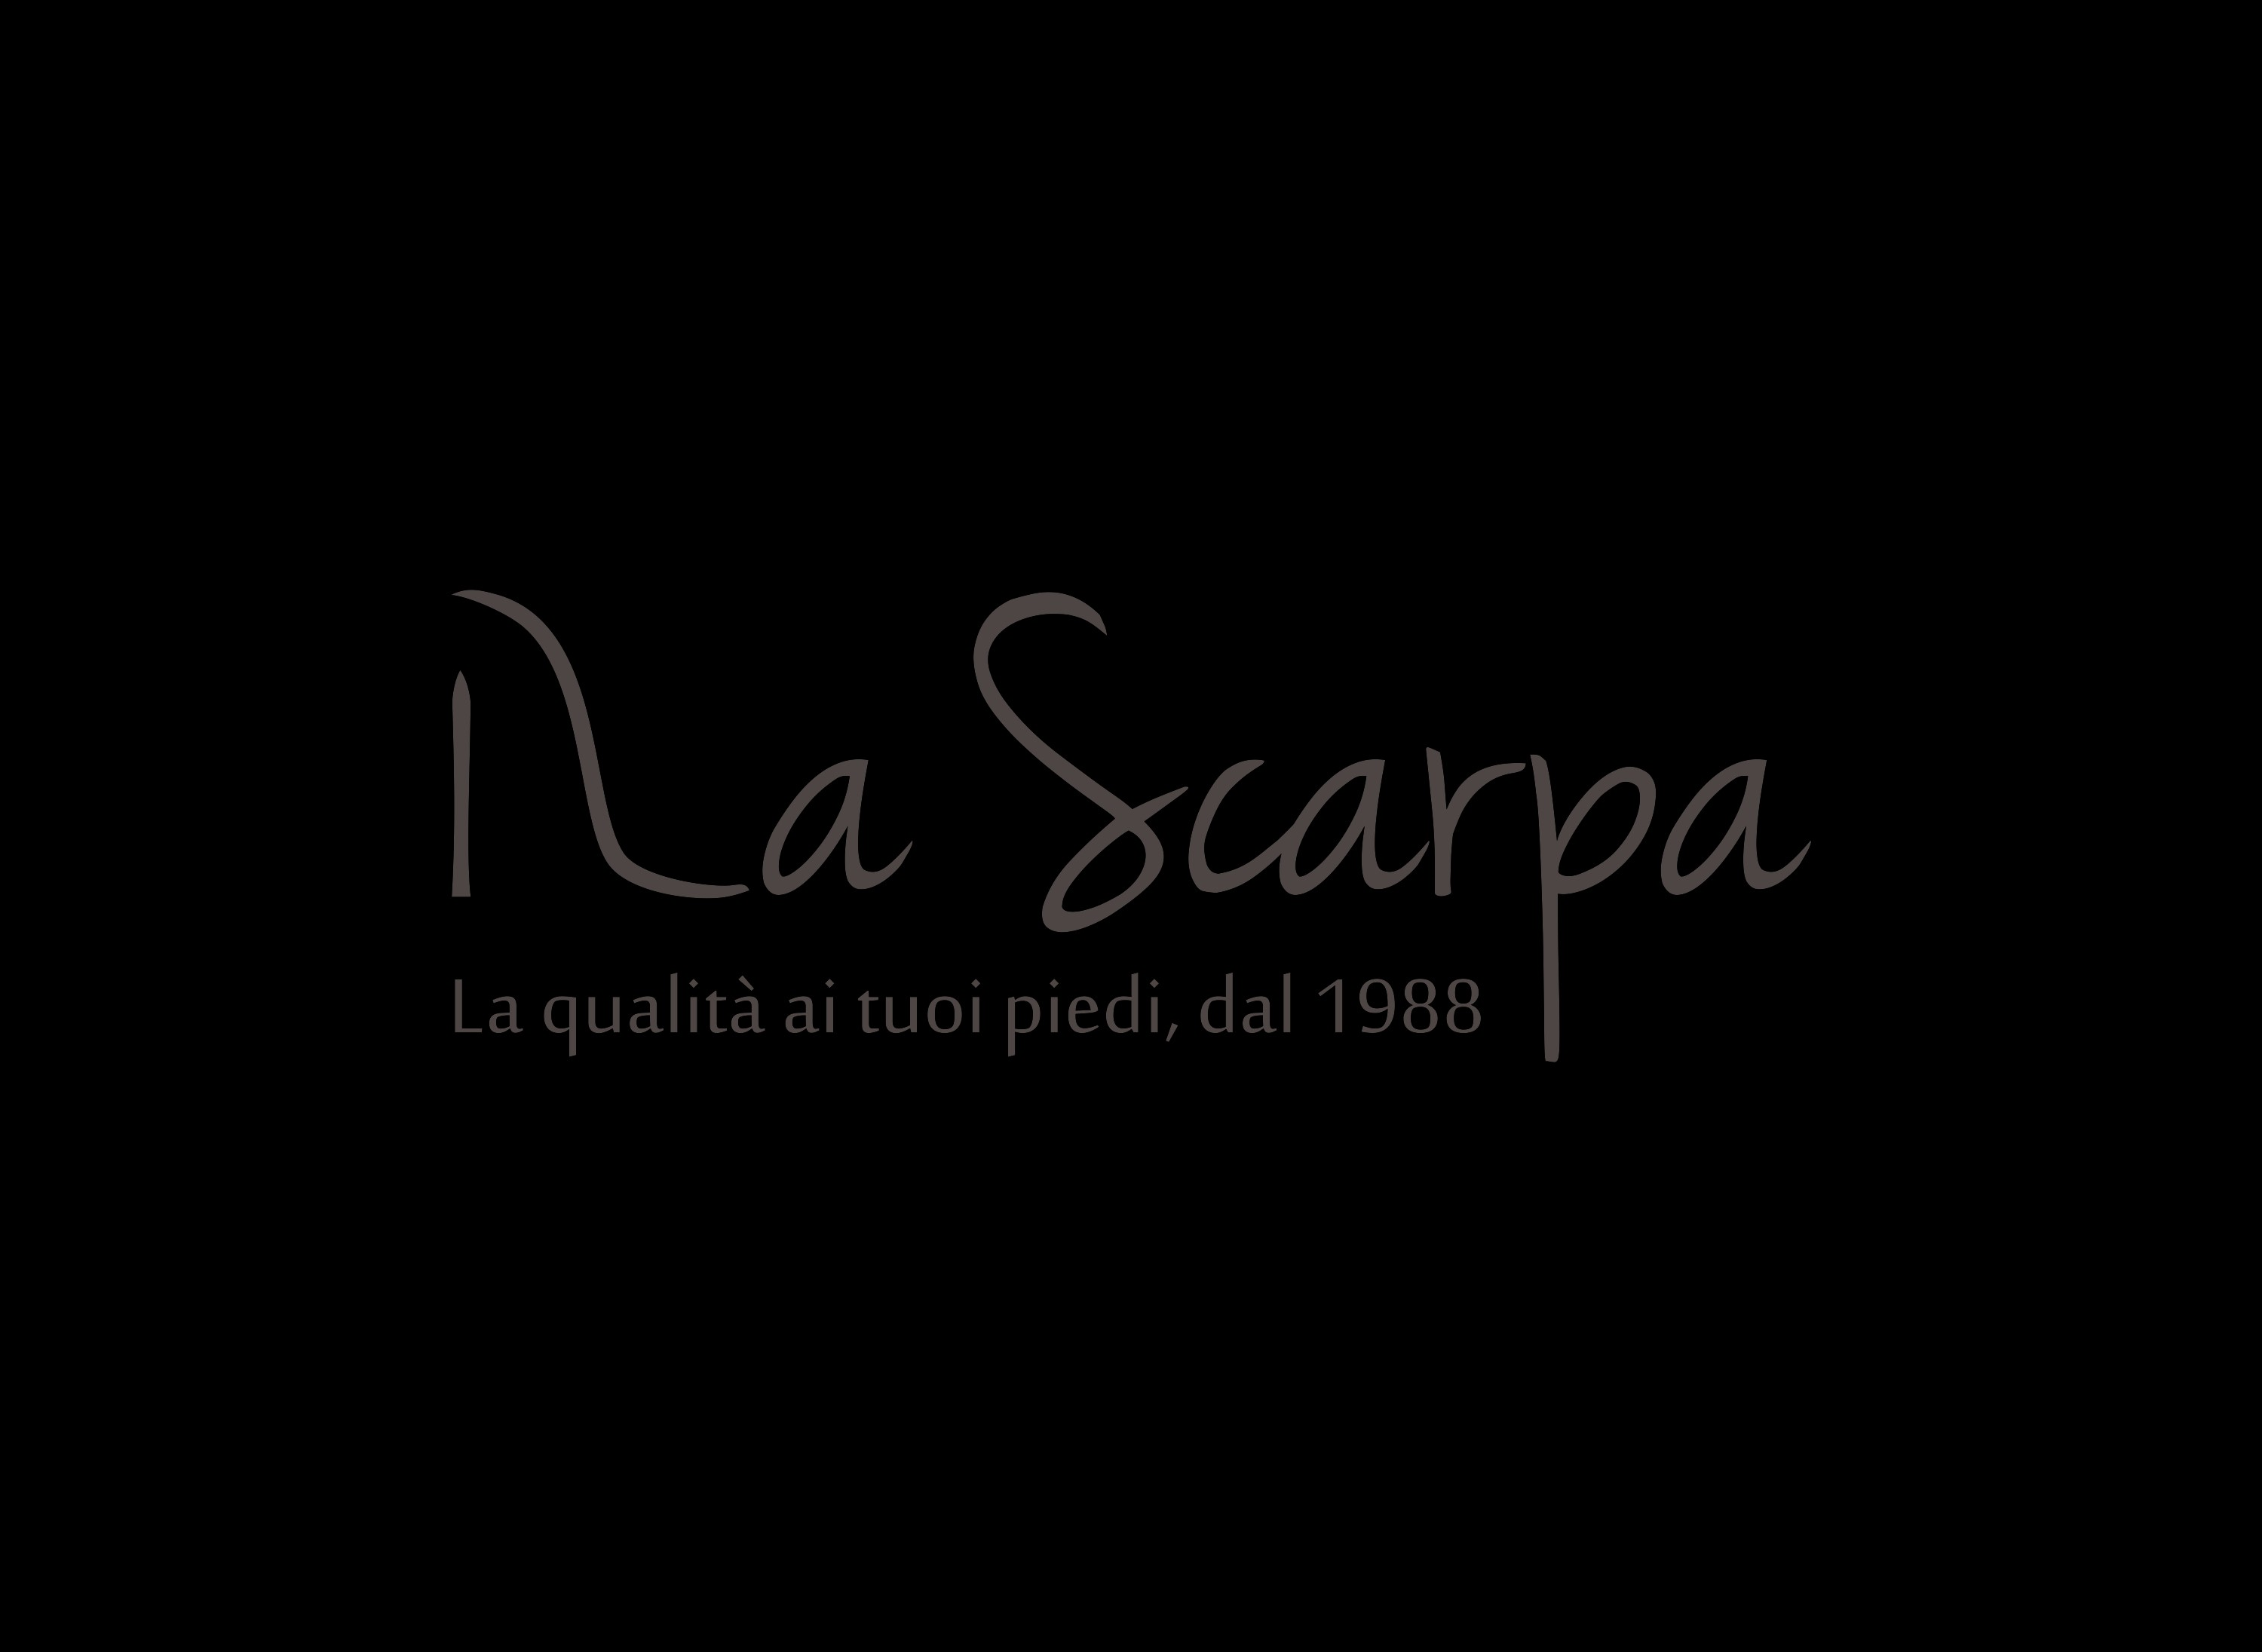 La Scarpa needs a simple, original and creative logo for renewal shoes store.